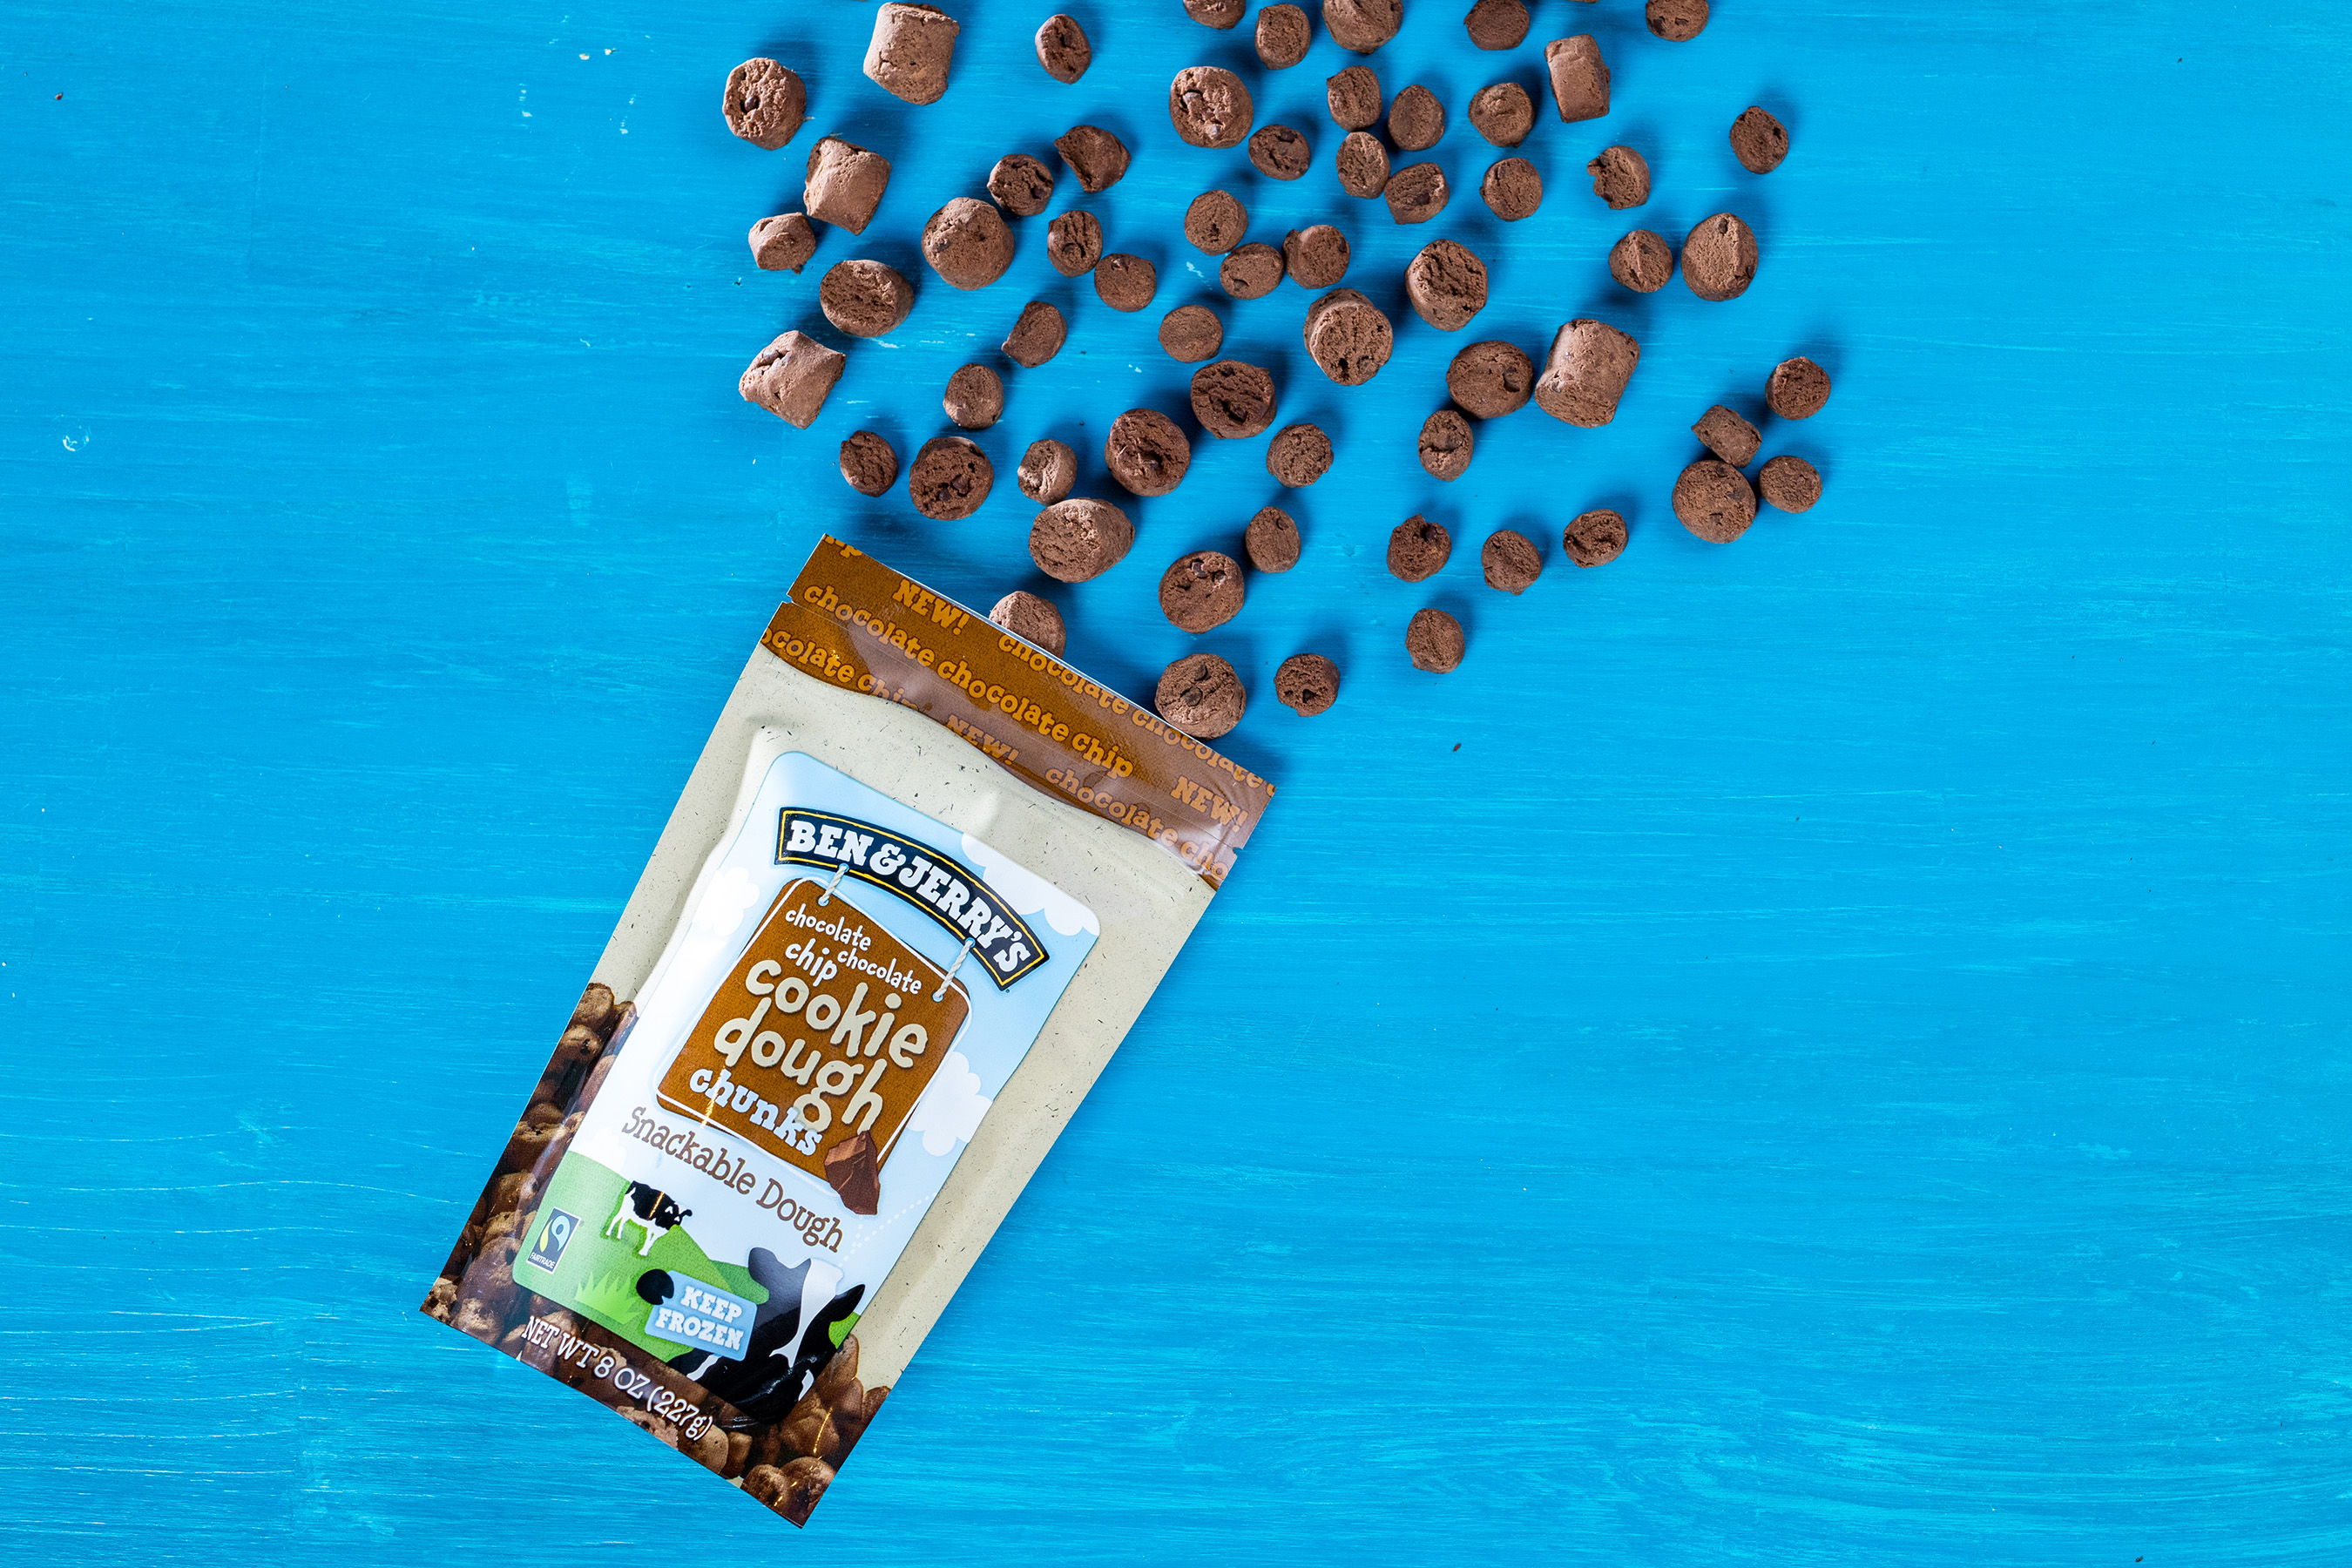 One new variation of Ben & Jerry's dough chunks is chocolate cookie dough with chocolate chips.